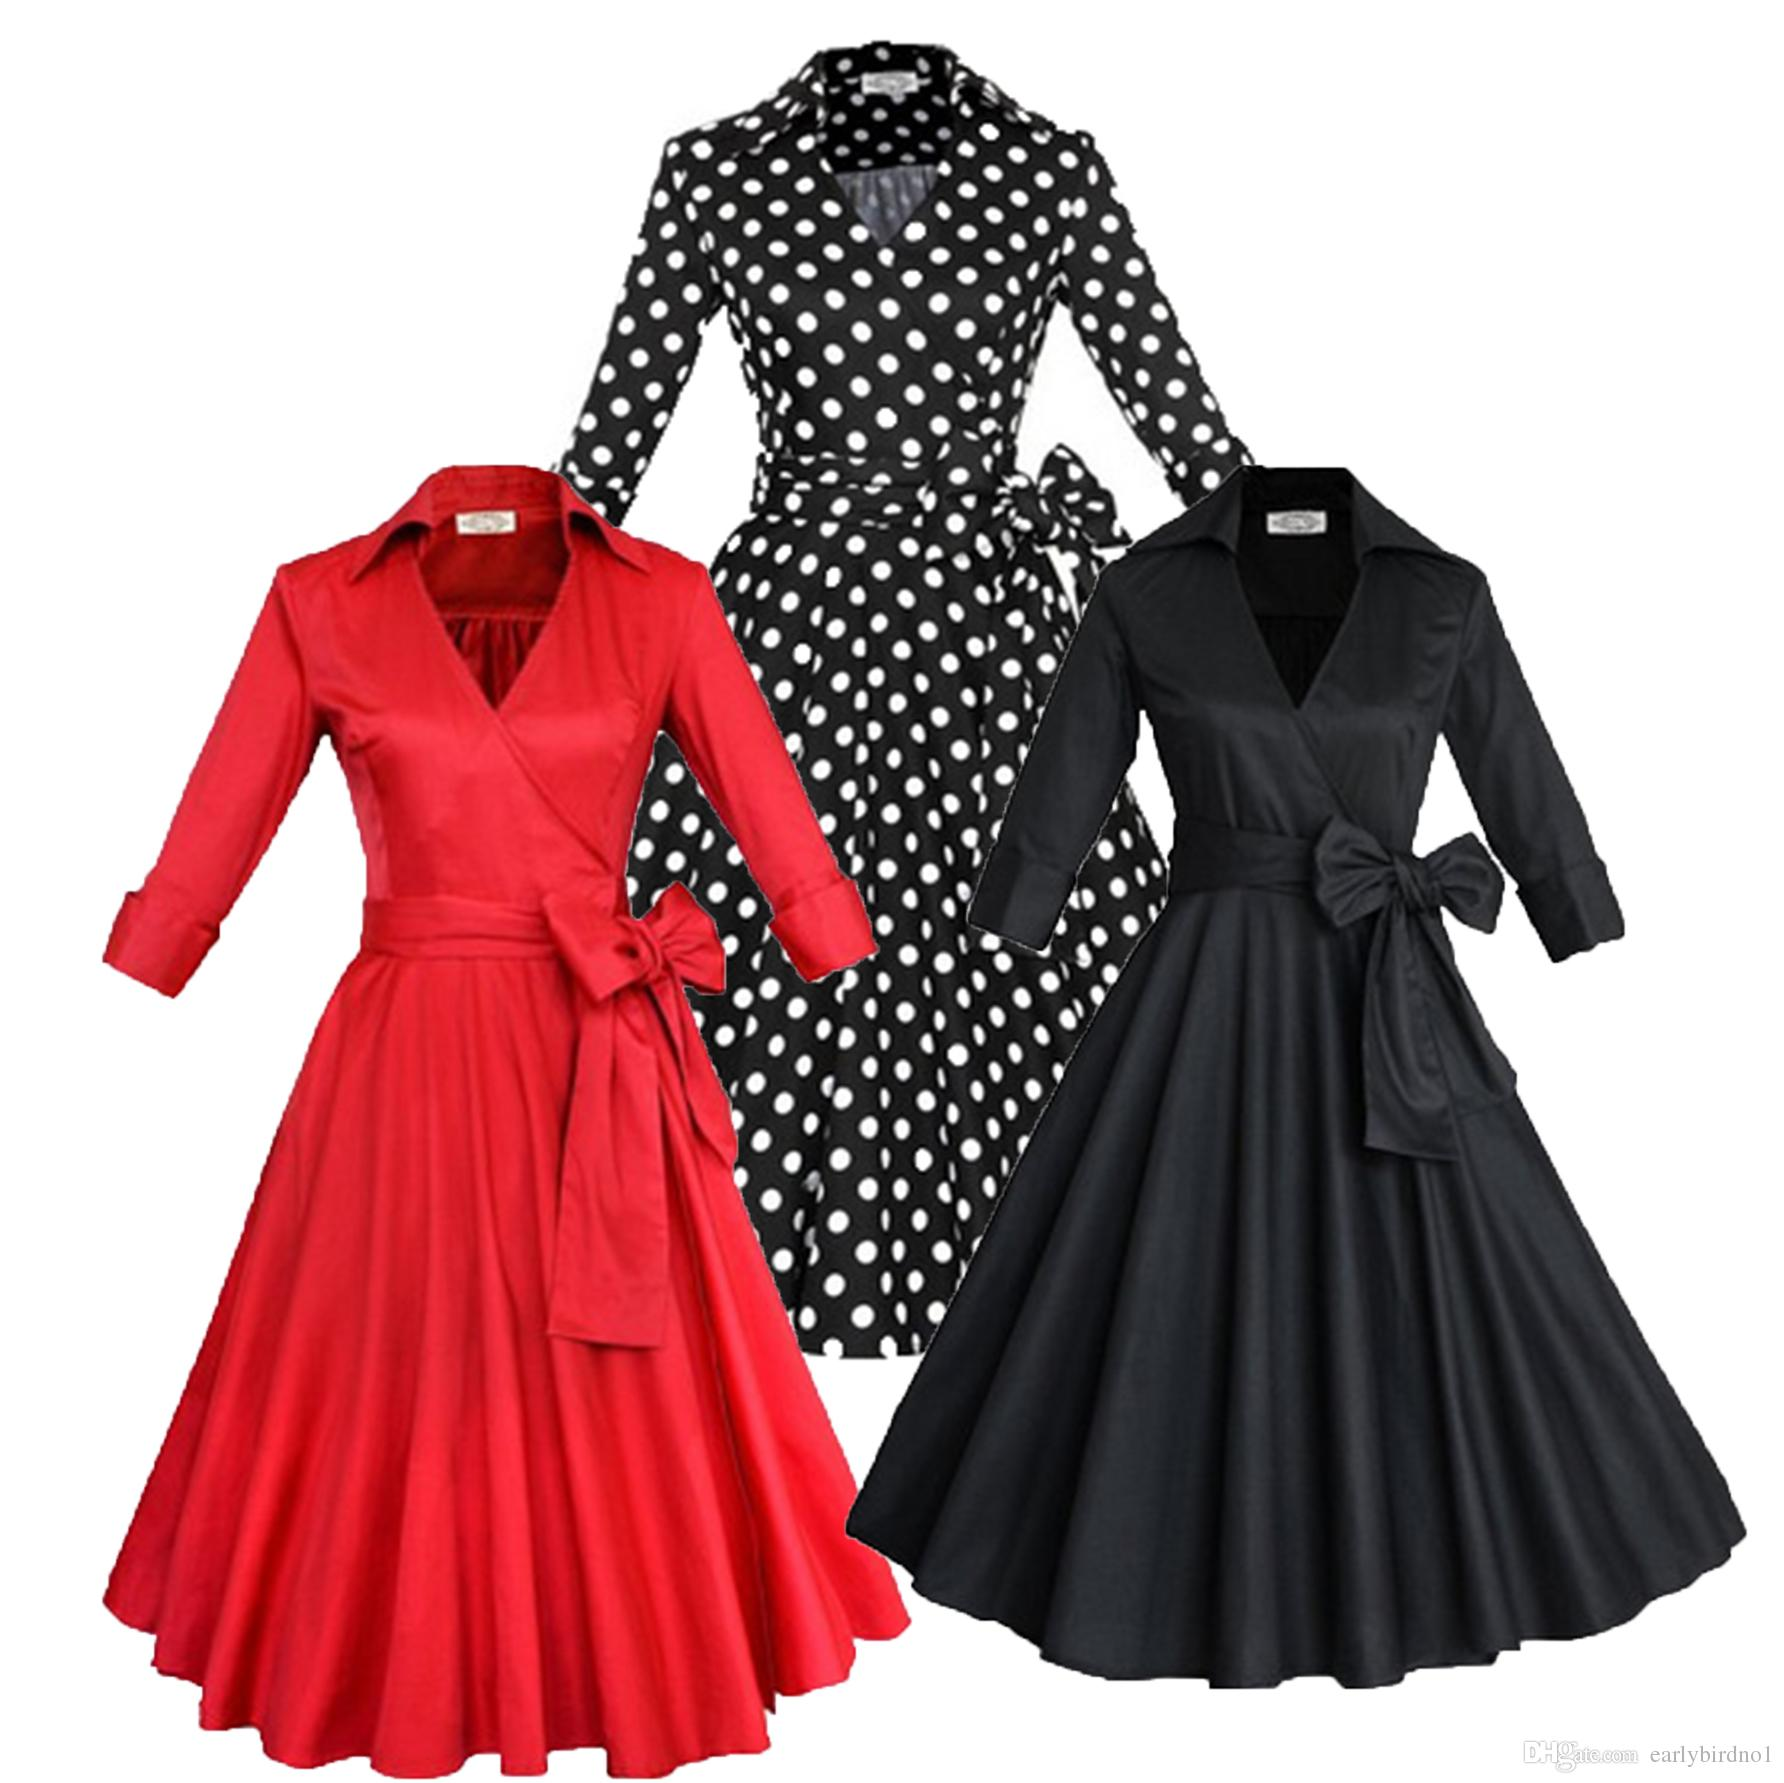 Fashion New Audrey Hepburn Vintage Style Casual Dresses Modern Ruffles Women European Fall